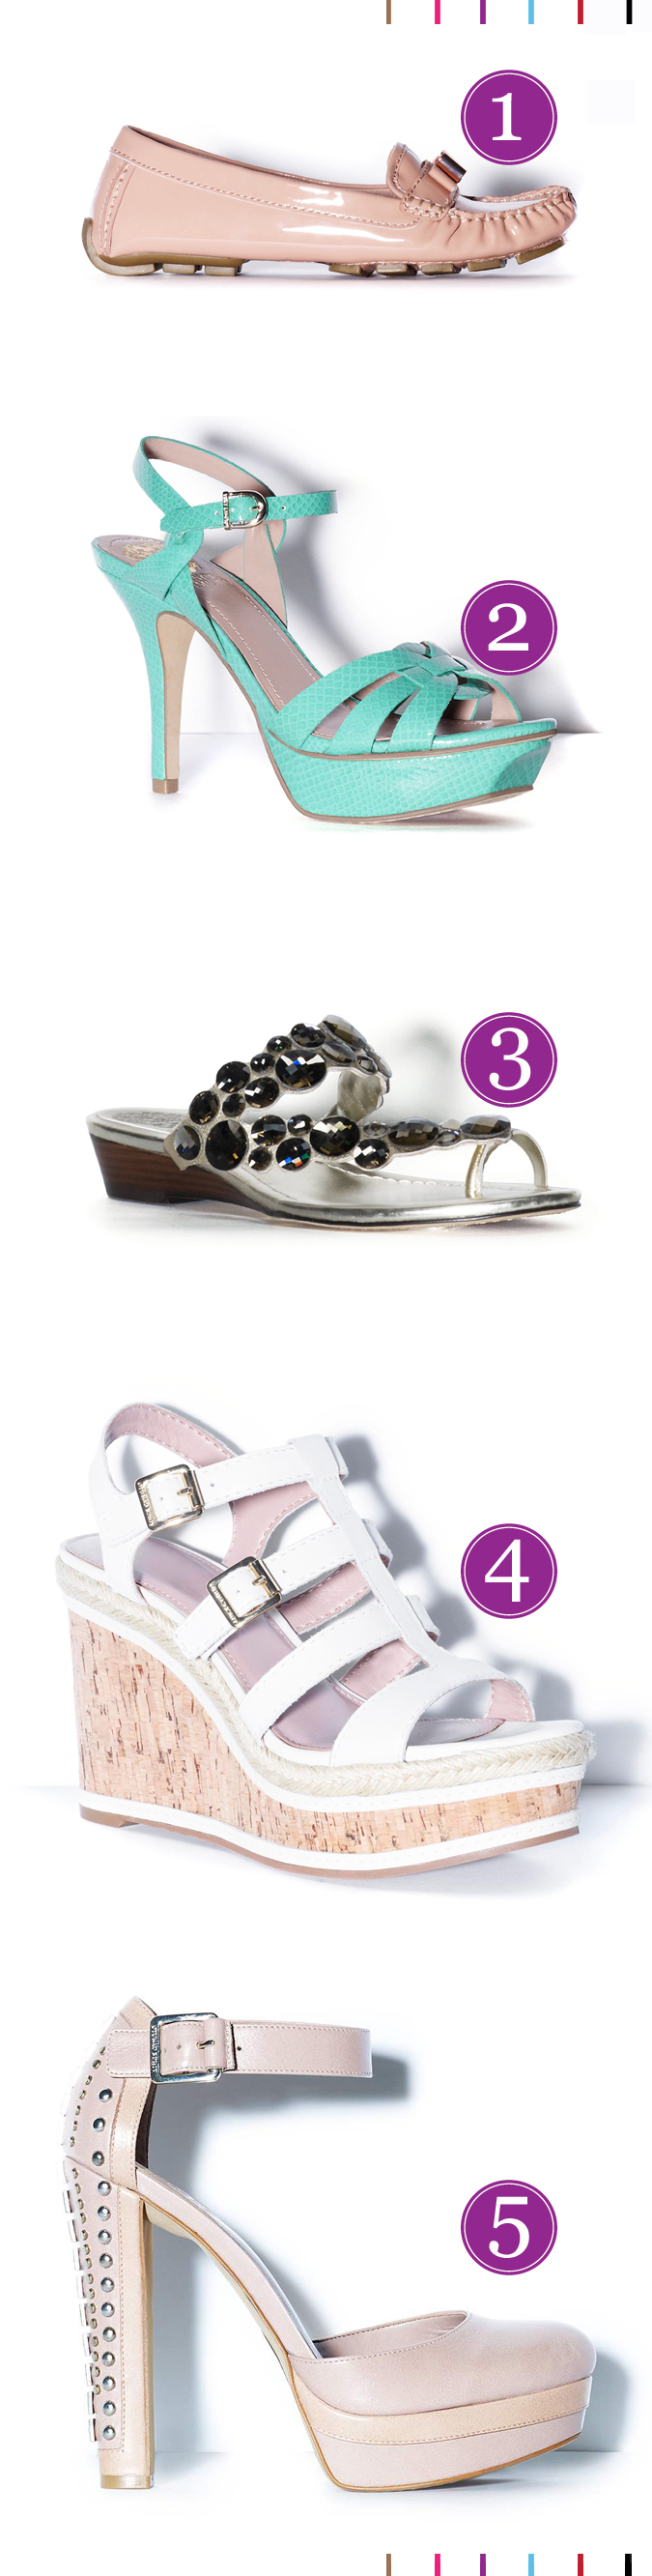 Vince Camuto Shoes Spring 2012 - Serial Indulgence Canada Fashion Blog